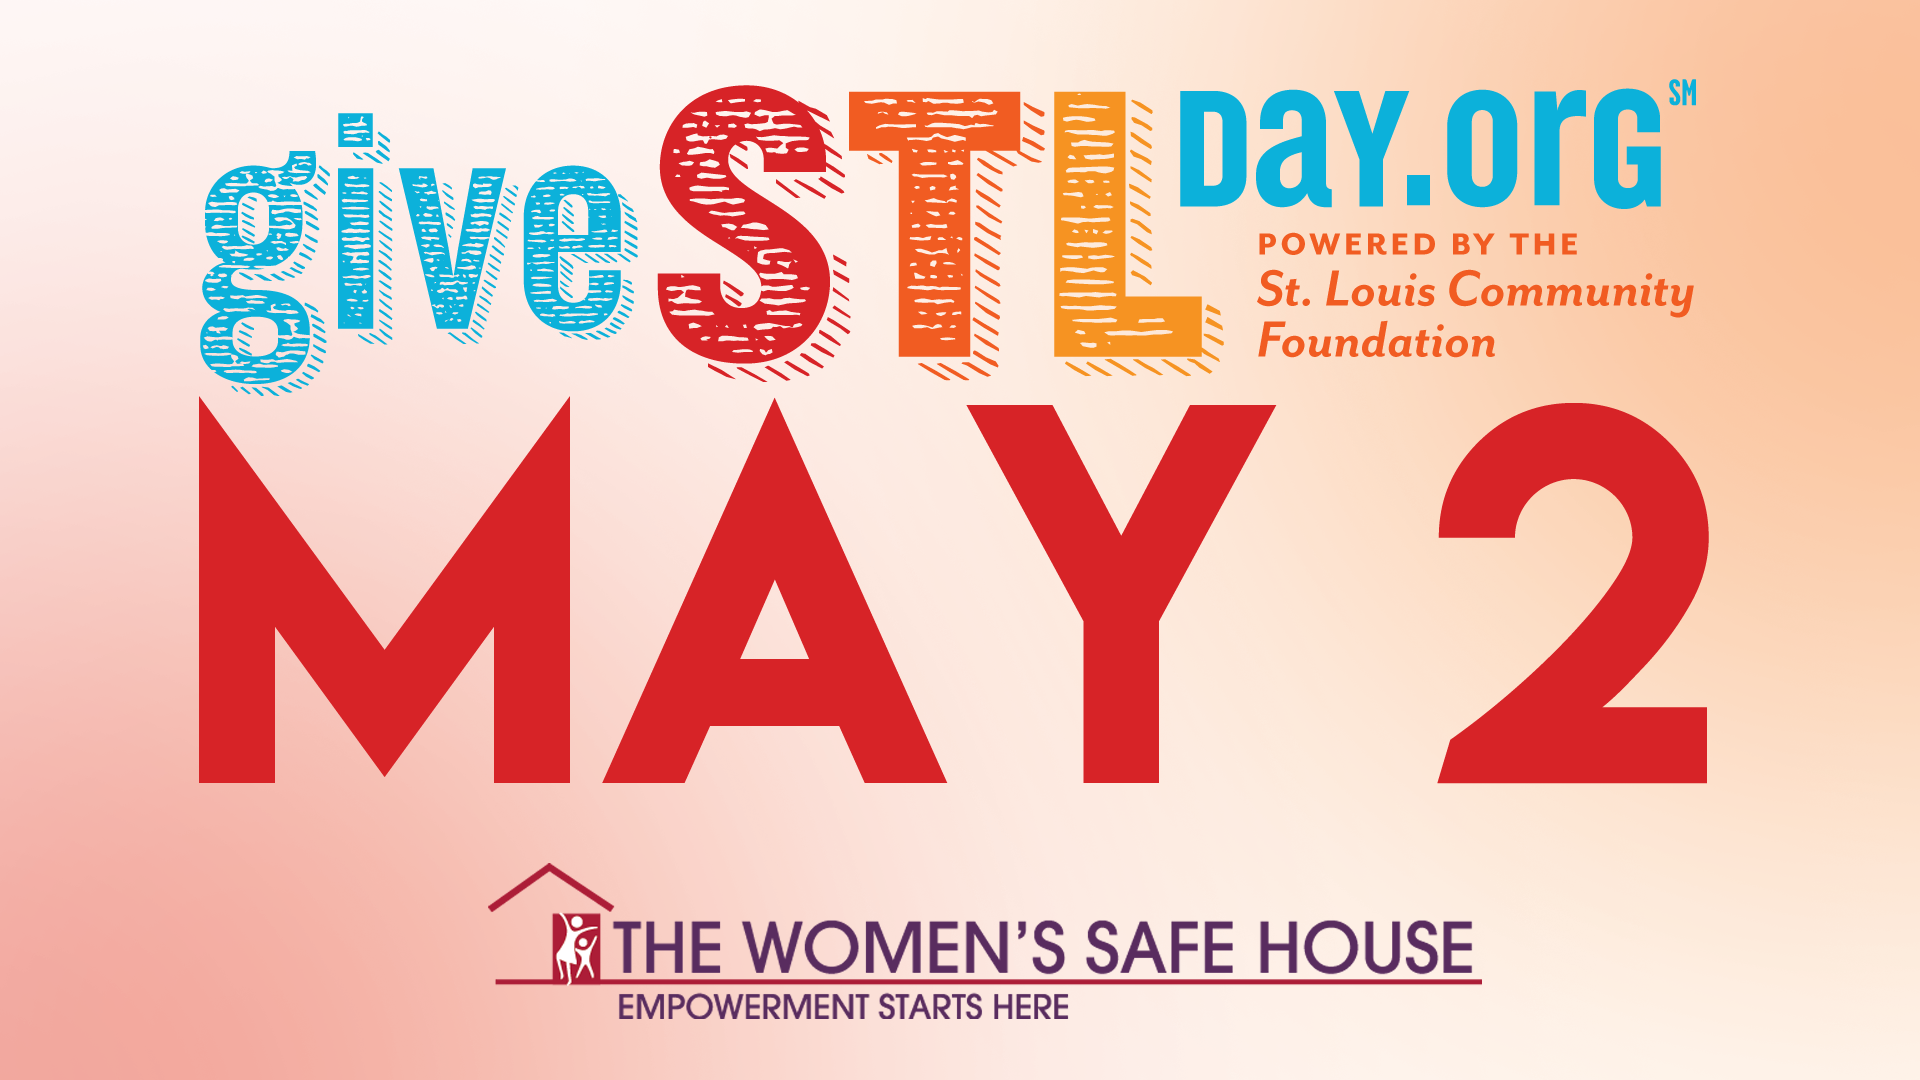 Give STL Day 2018 - The Women's Safe House